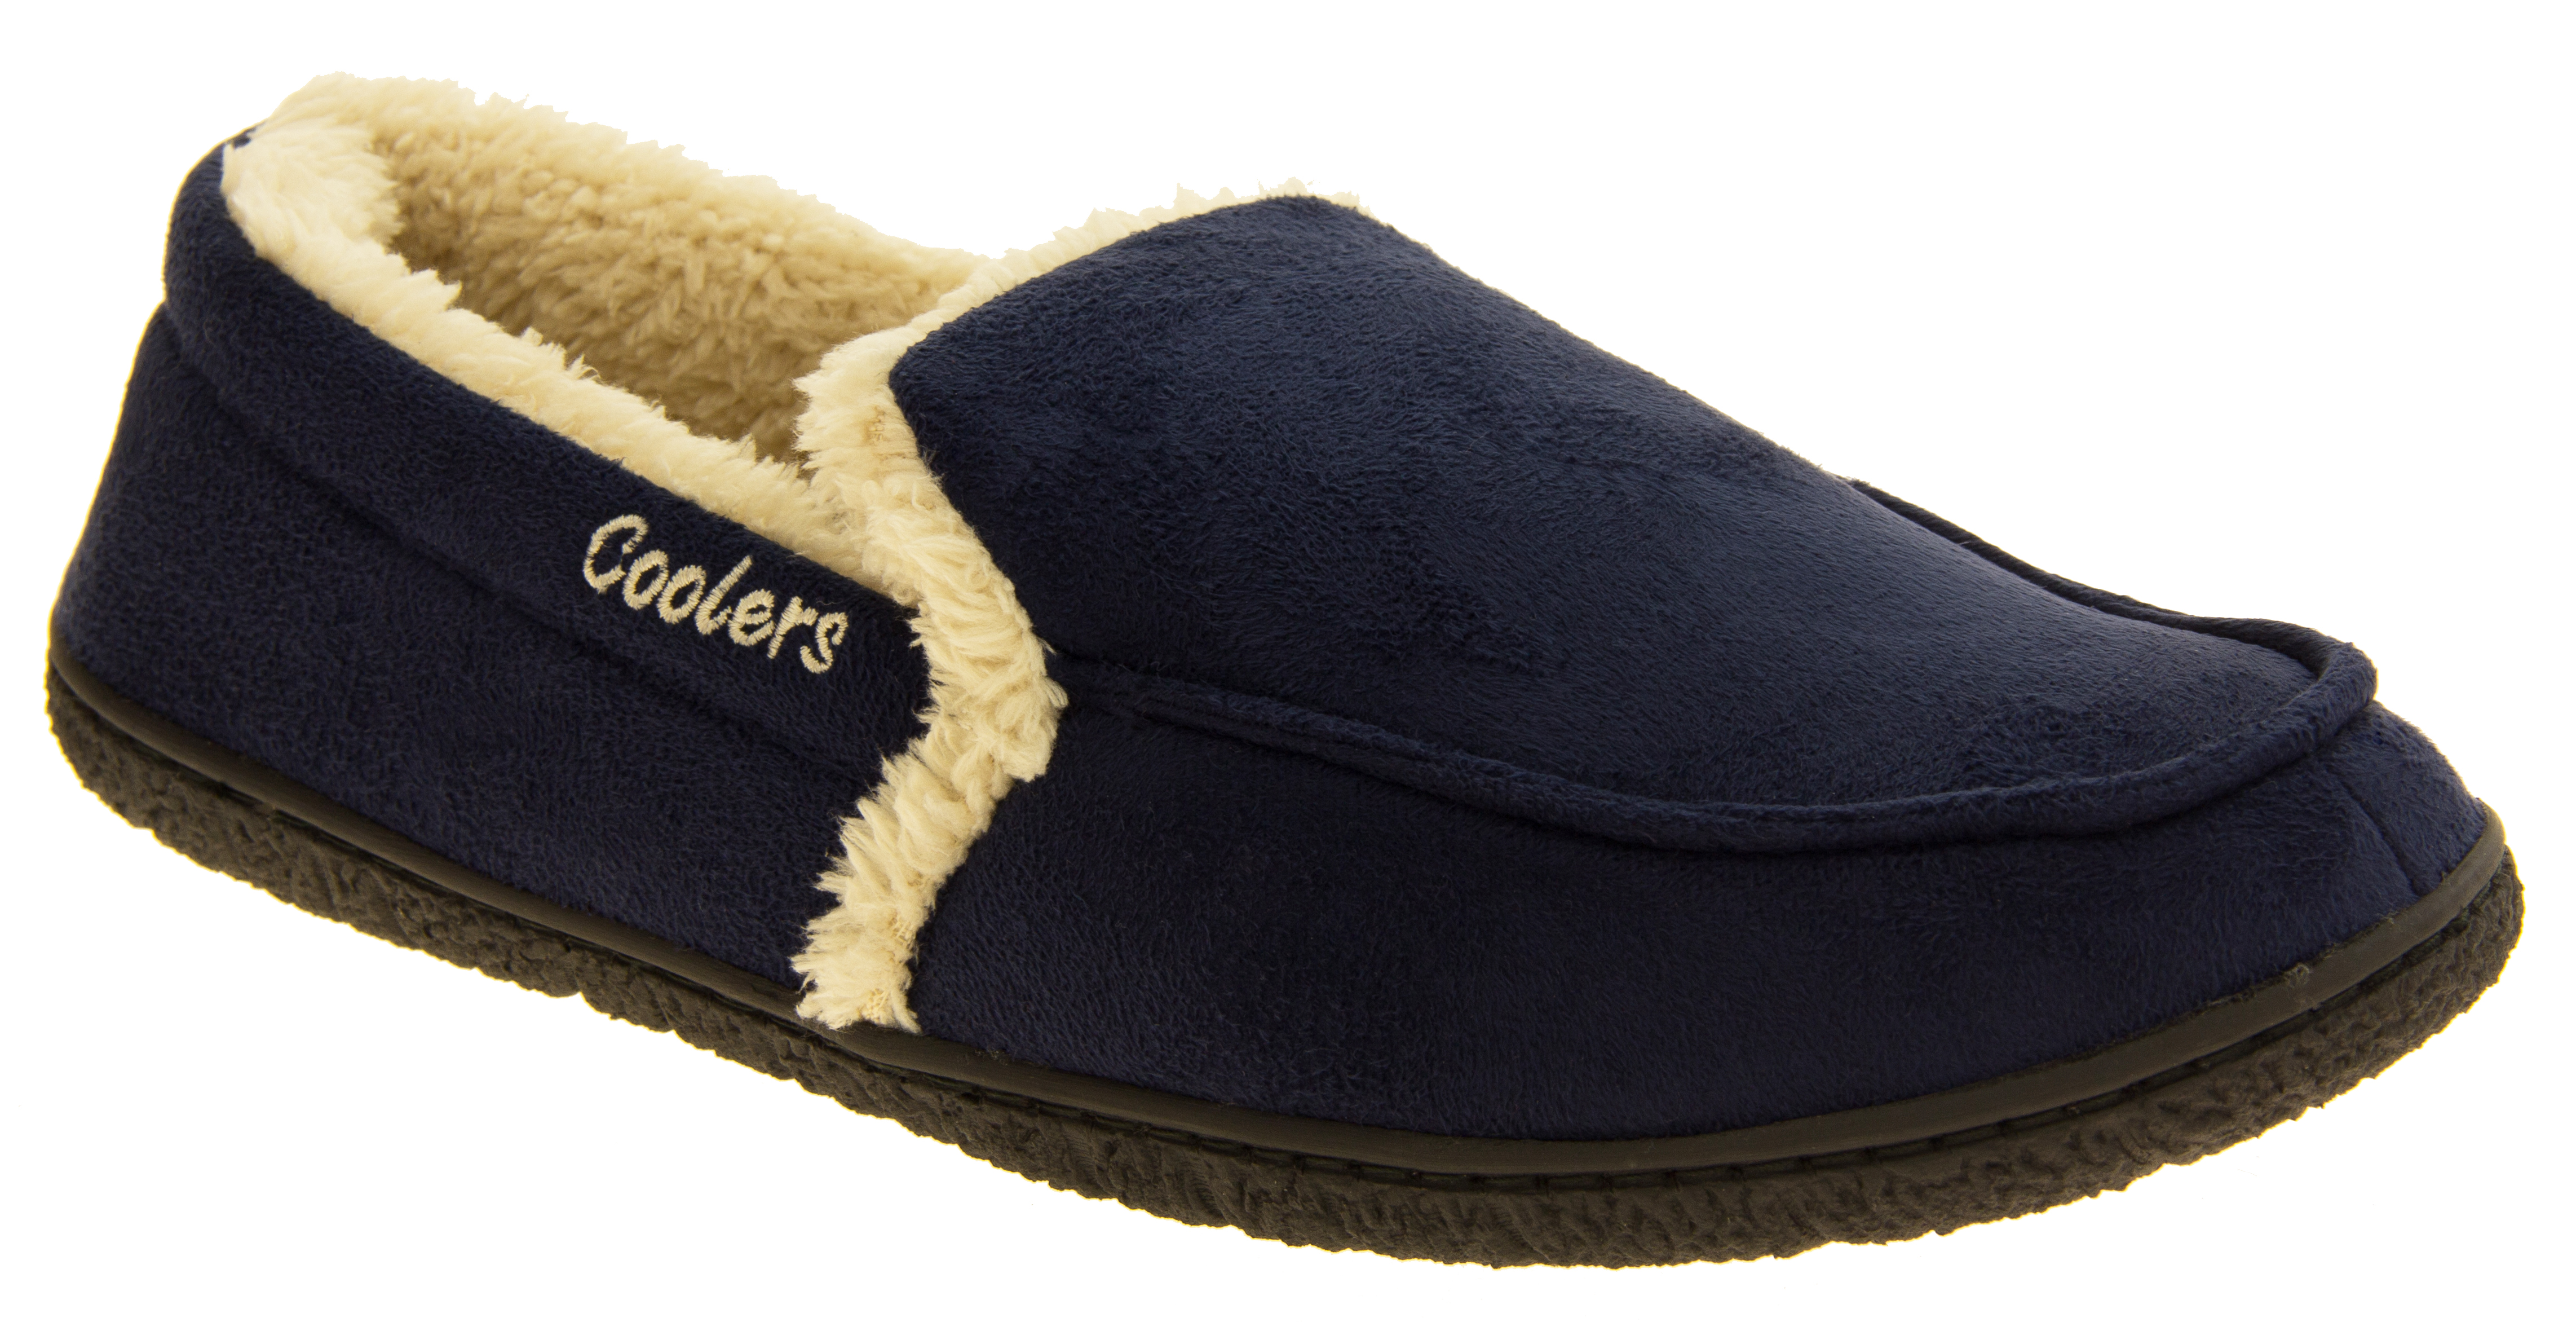 Mens Coolers Faux Suede Full Back Padded Cosy Slippers Sizes UK 7 8 9 10 11 12